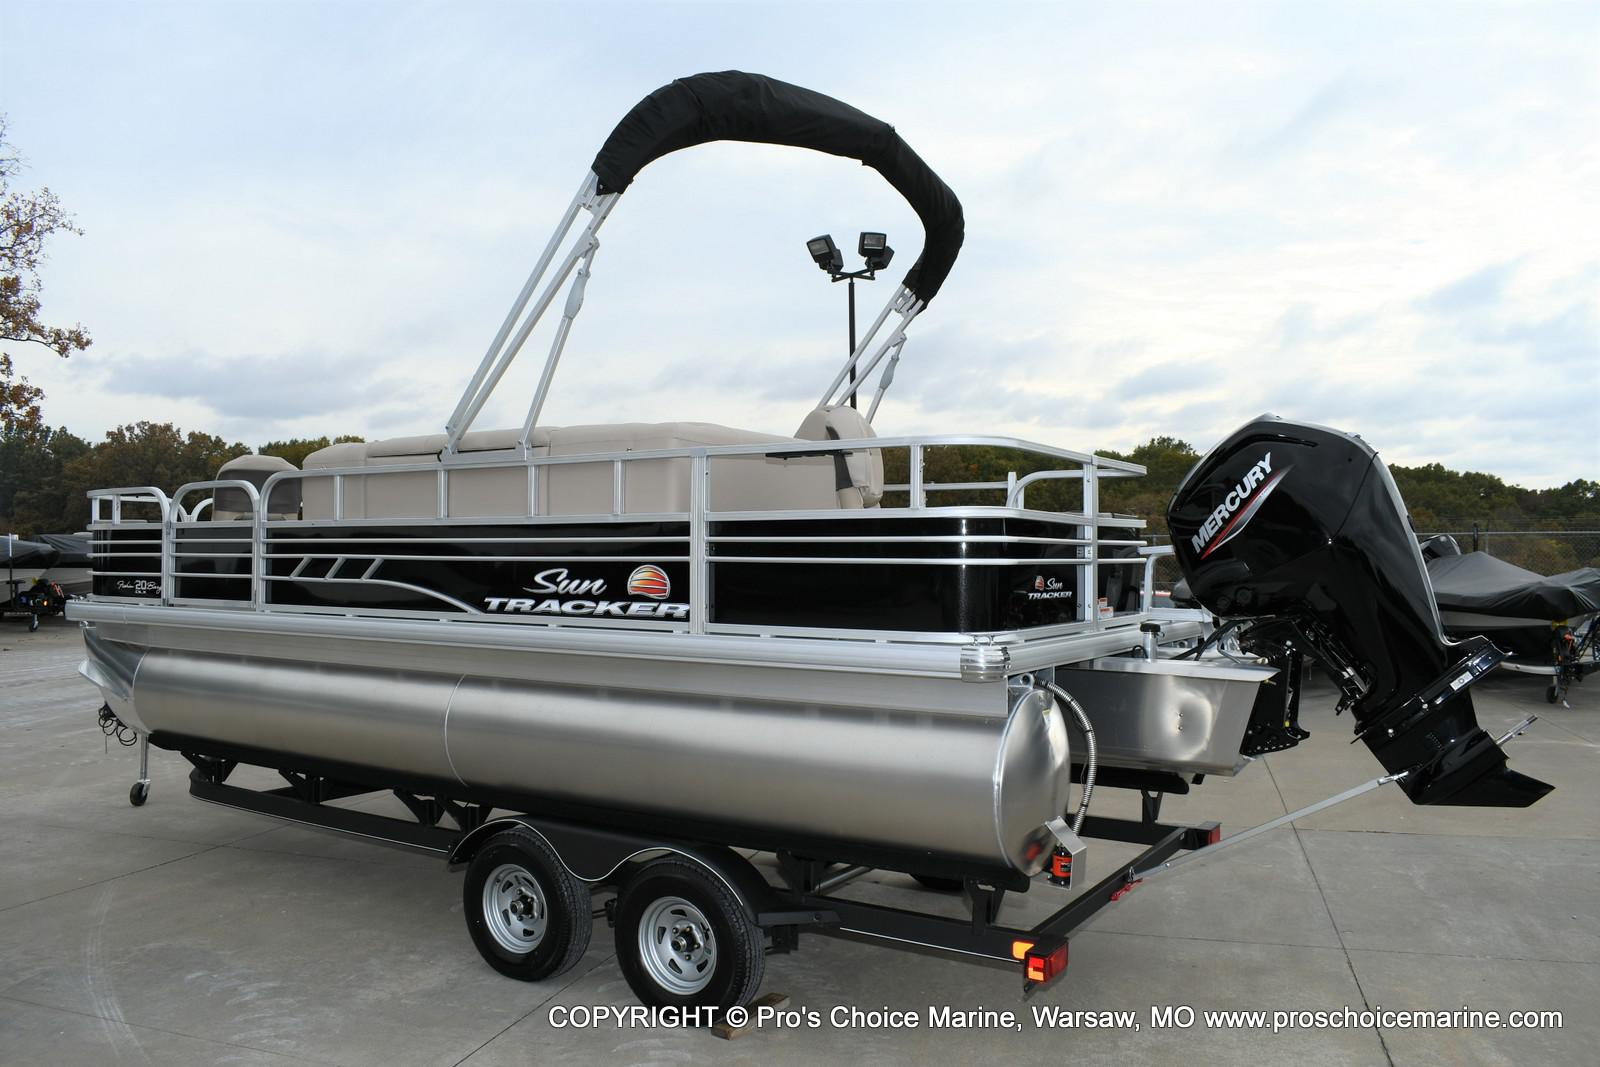 2020 Sun Tracker boat for sale, model of the boat is Fishin' Barge 20 DLX & Image # 13 of 50